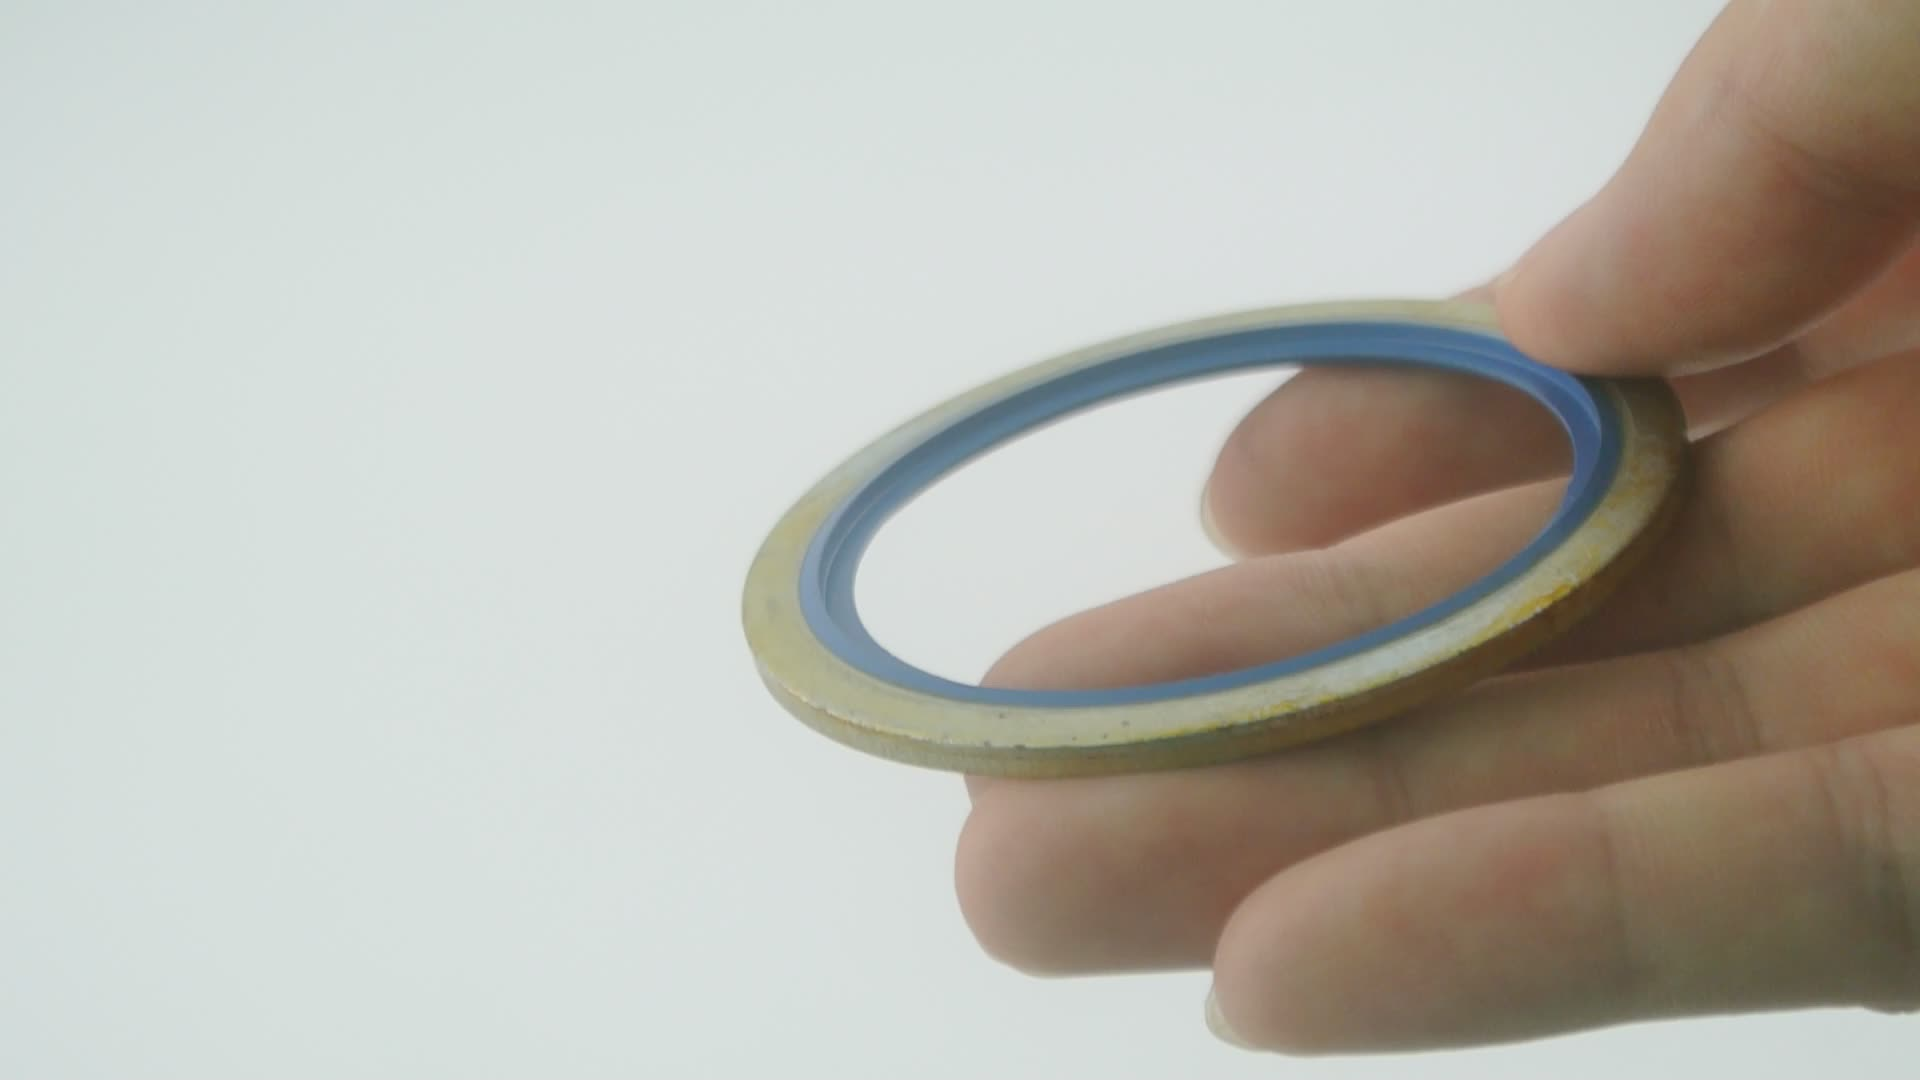 DLSEALS XM700 Lip seal gasket for Auto Air Conditioning Accessories